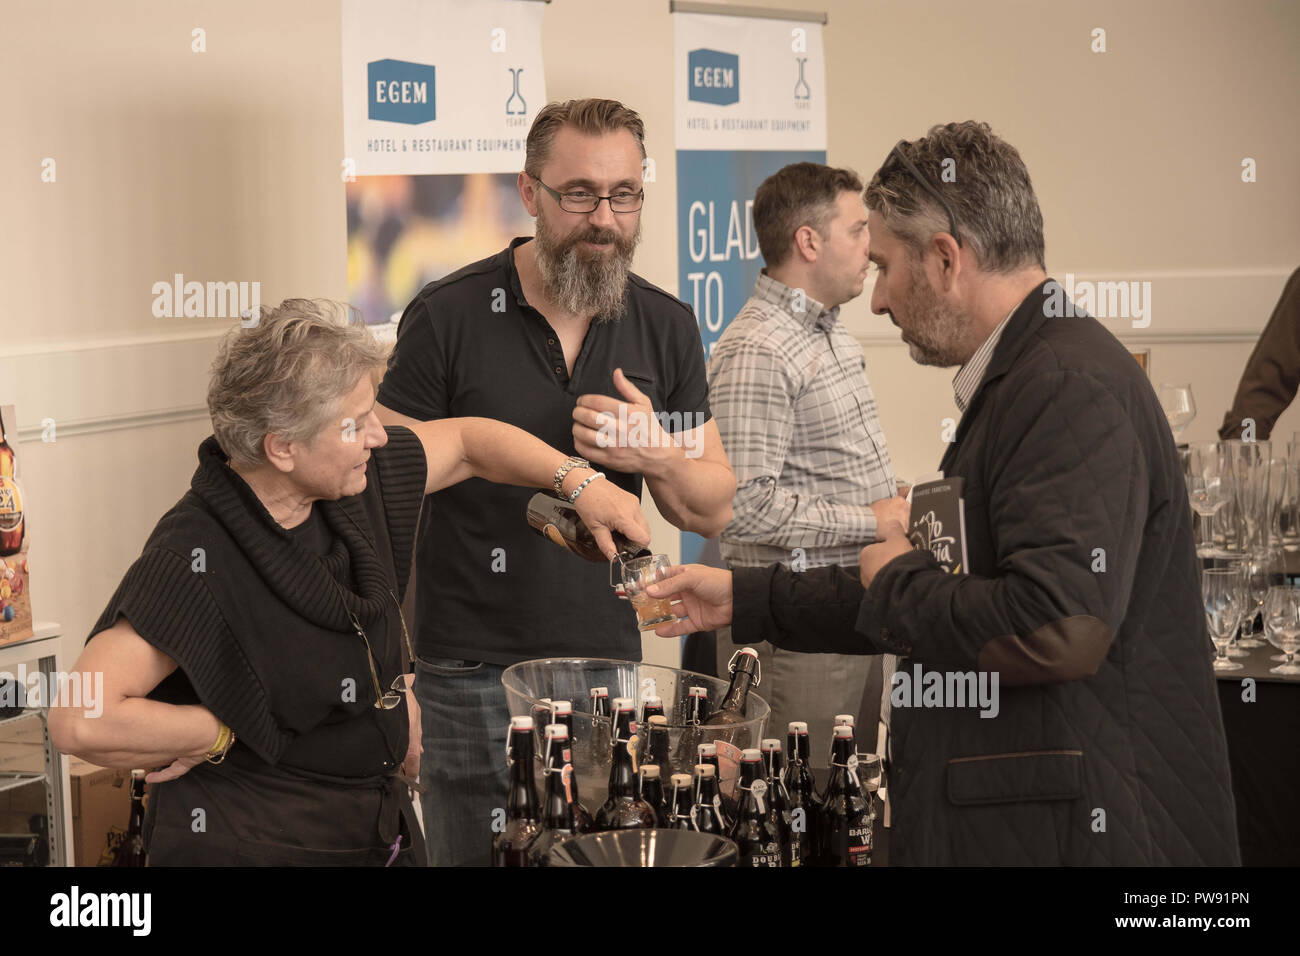 Athens, Greece. 13th Oct, 2018. A woman seen pouring beer into a glass from a bottle during the exhibition.The 5th Zythognosia Exhibition, people get a chance during the exhibition to taste multiple brews and premium beers from different brands and companies like Levante for Zante Lager, Asylum for Asylum saison, Mikonu for Mikonu Pale Ale, Deals for Fischer, Samichlaus and Cava di patsi for Flaros Session Ale in Zappeion Megaron in Athens. Credit: Nikolas Joao Kokovlis/SOPA Images/ZUMA Wire/Alamy Live News - Stock Image